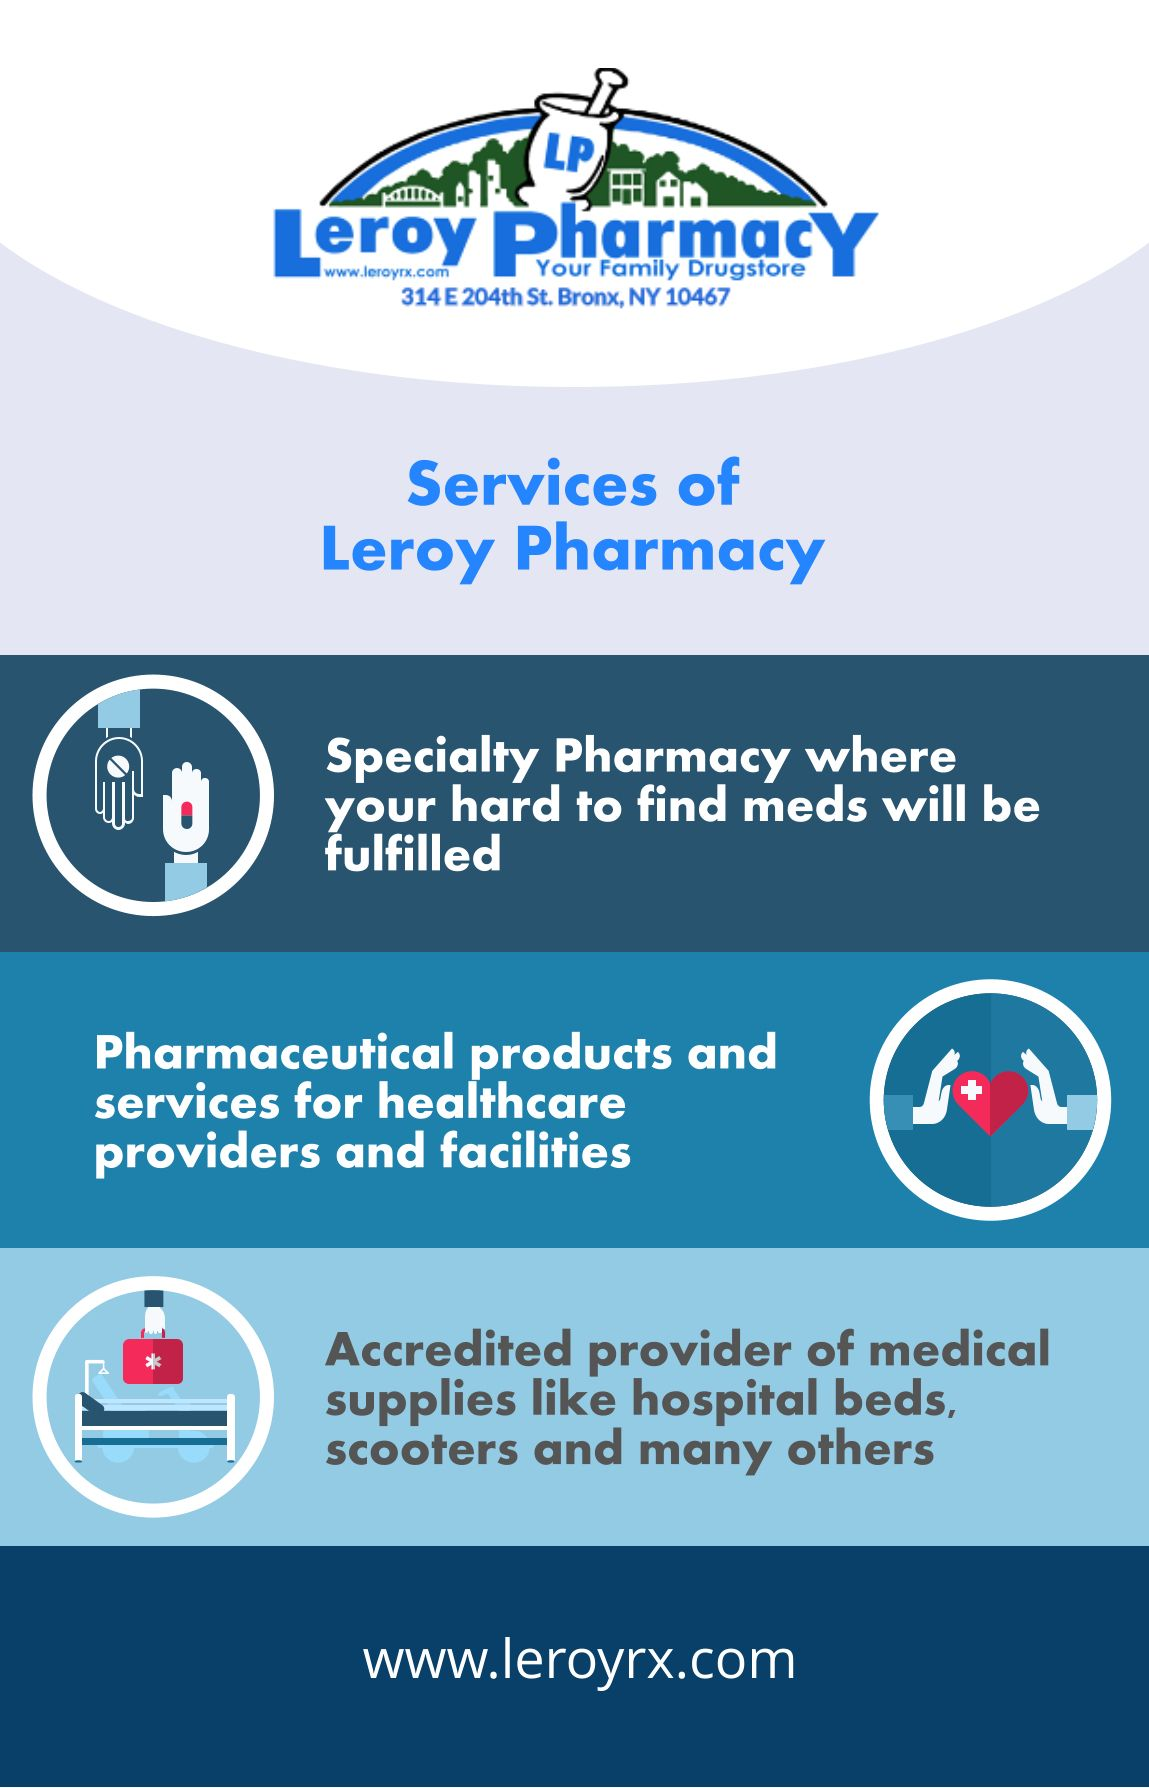 Know more about the different Services of LeroyPharmacy